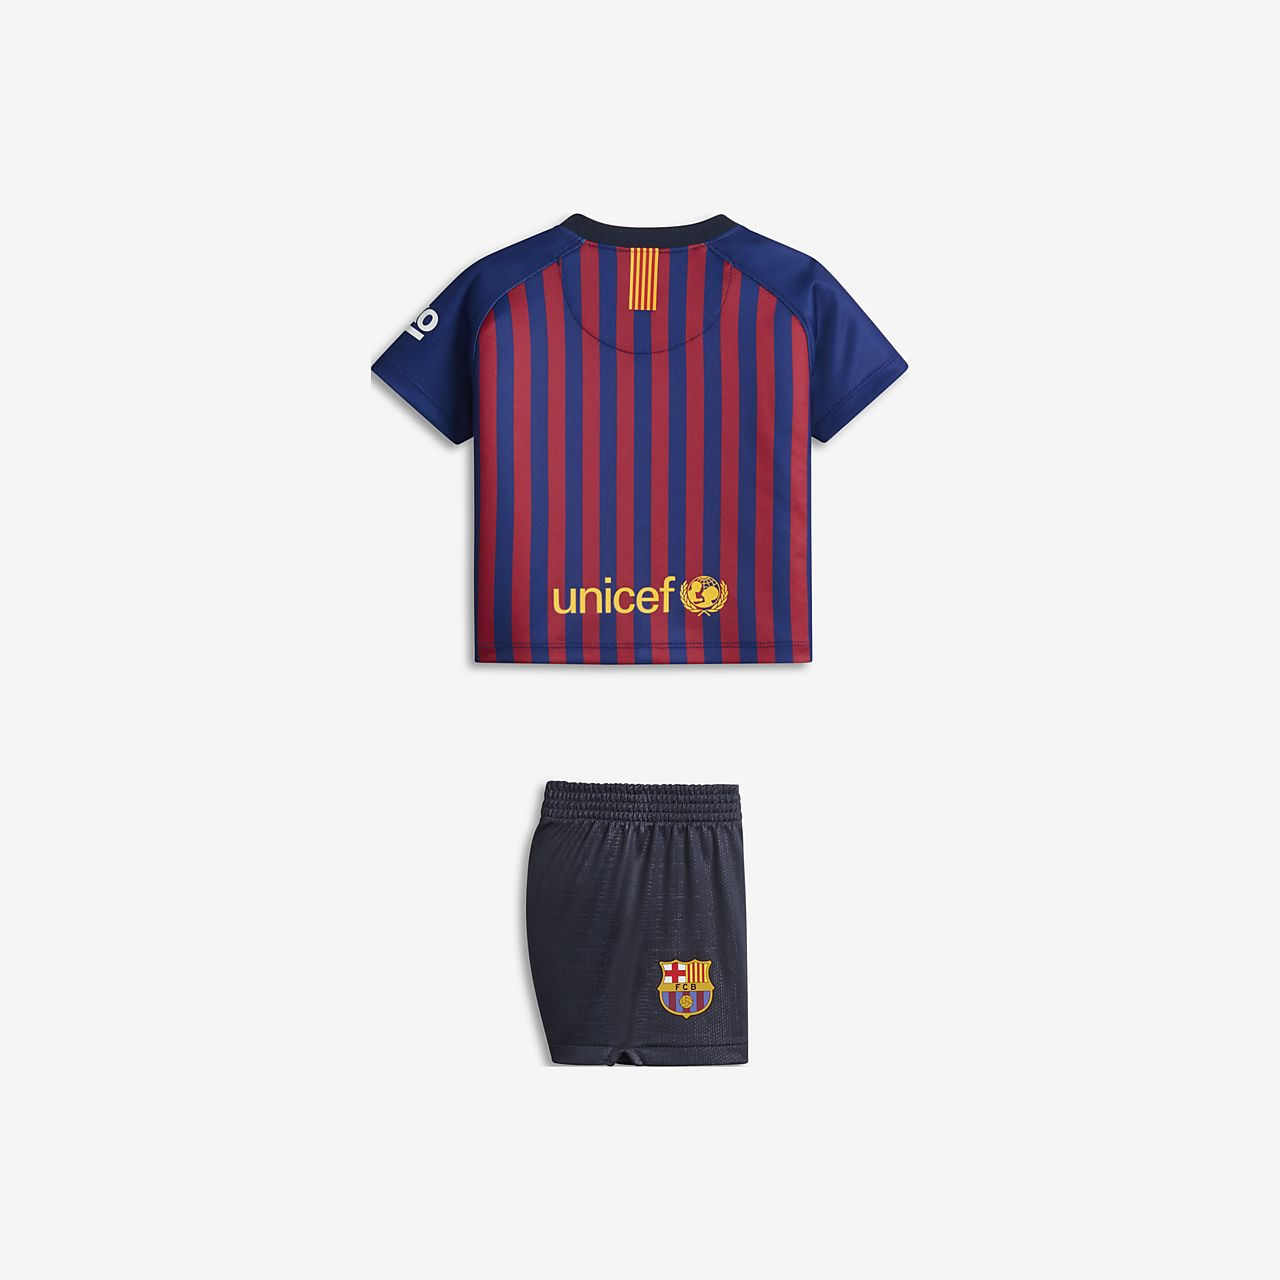 e638fa0afd1 2018/19 FC Barcelona Stadium Home Baby Football Kit. Nike.com SK